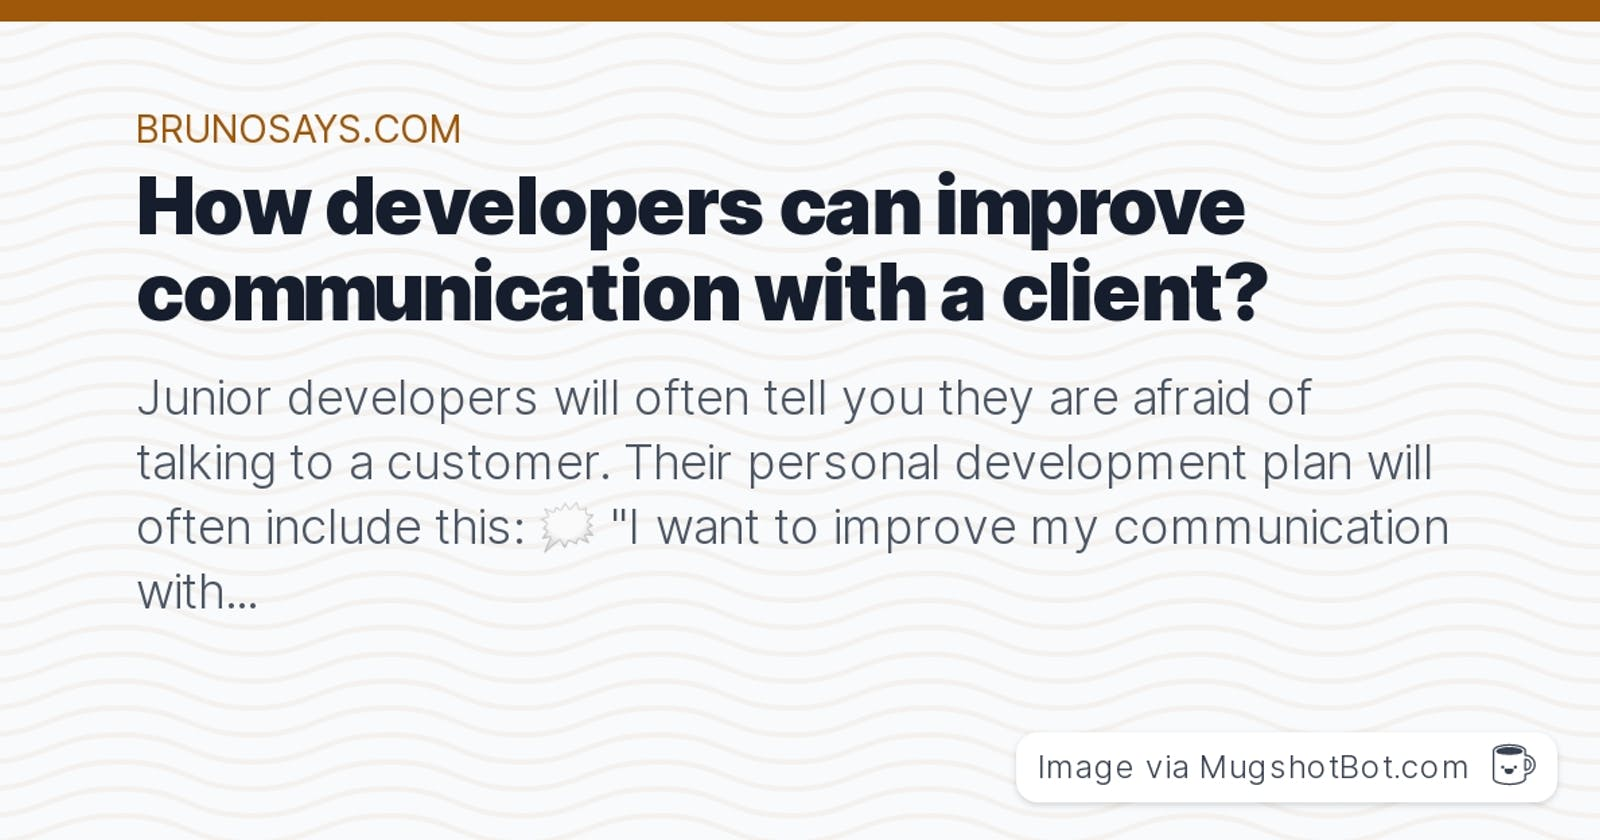 How developers can improve communication with a client?